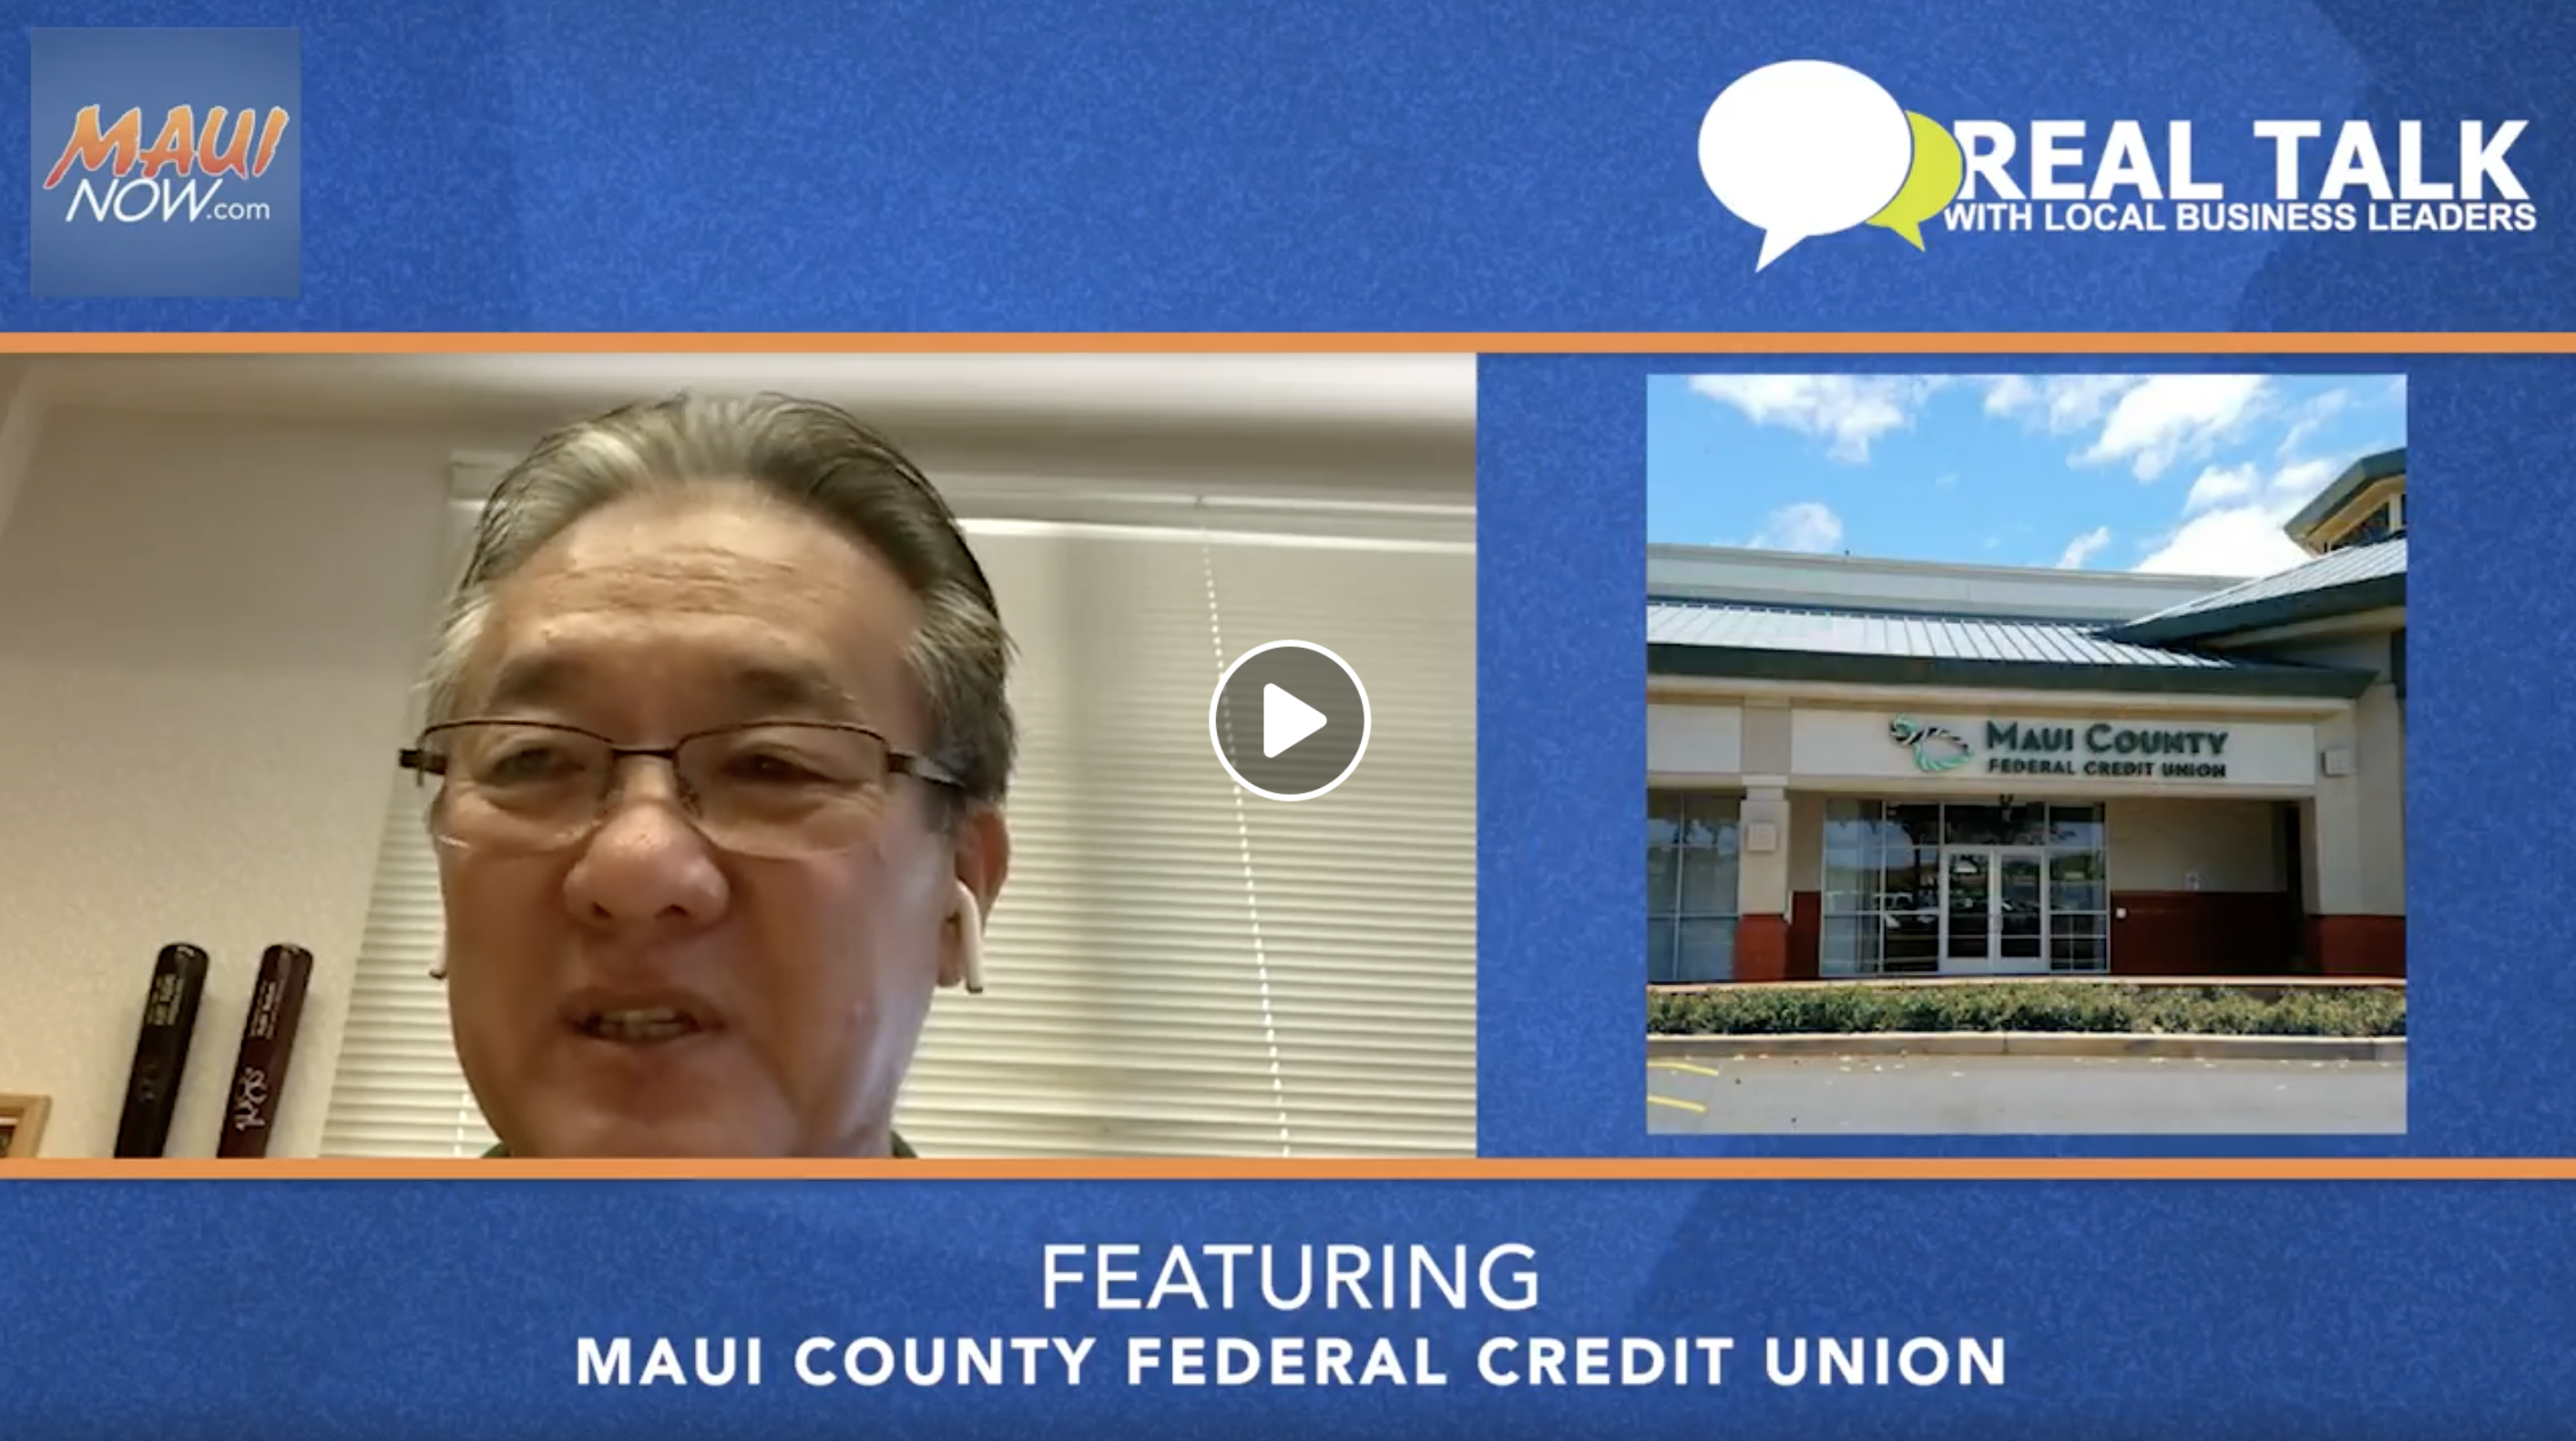 VIDEO: Real Talk with Maui County Federal Credit Union CEO Gary Fukuroku